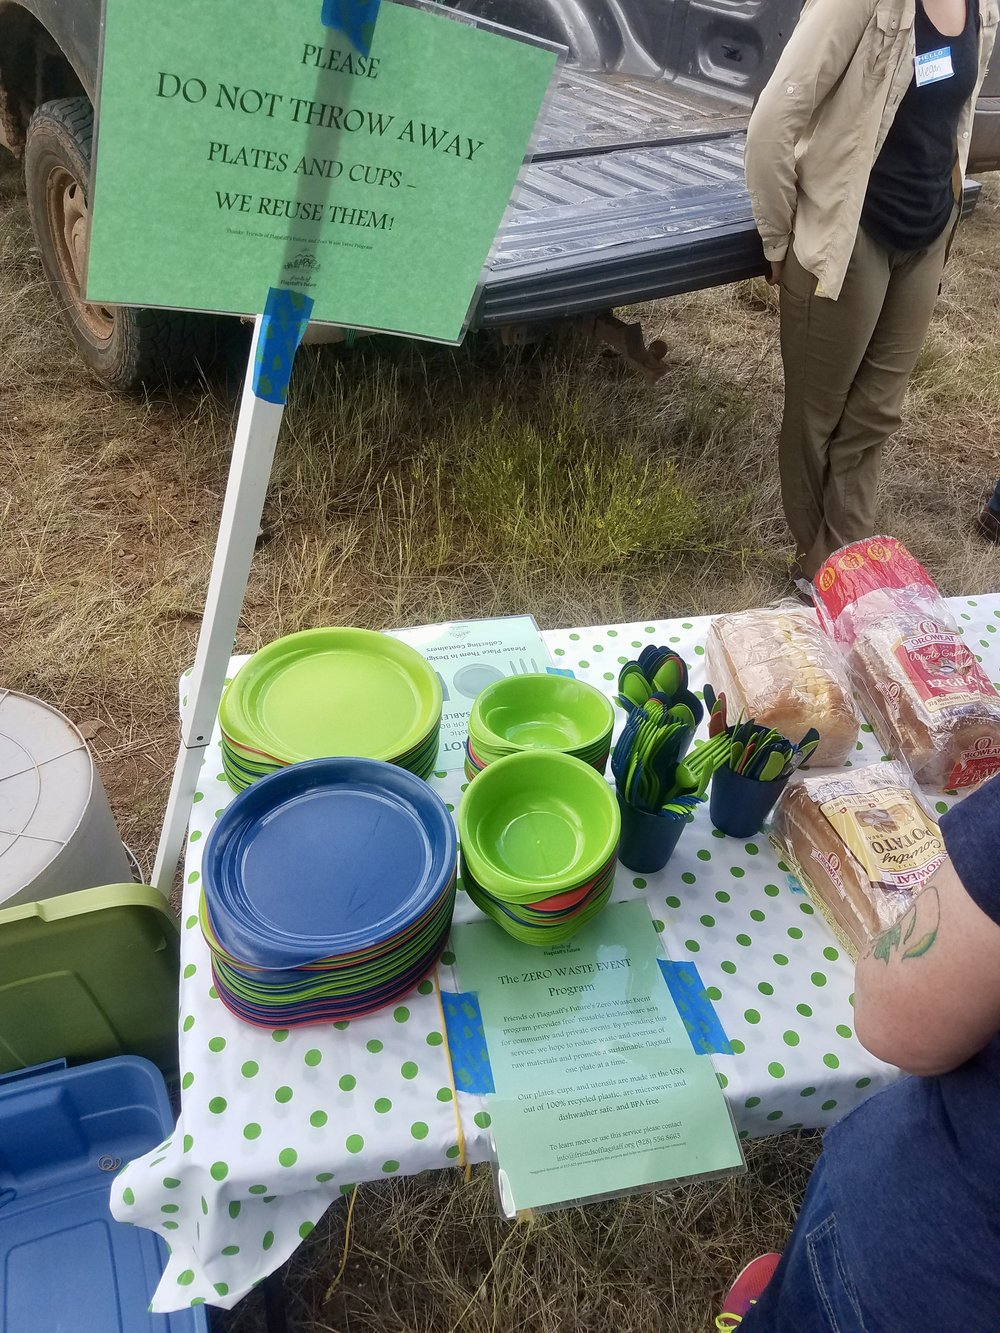 Thank you to the Friends of Flagstaff's Future for their reusable diningware program.